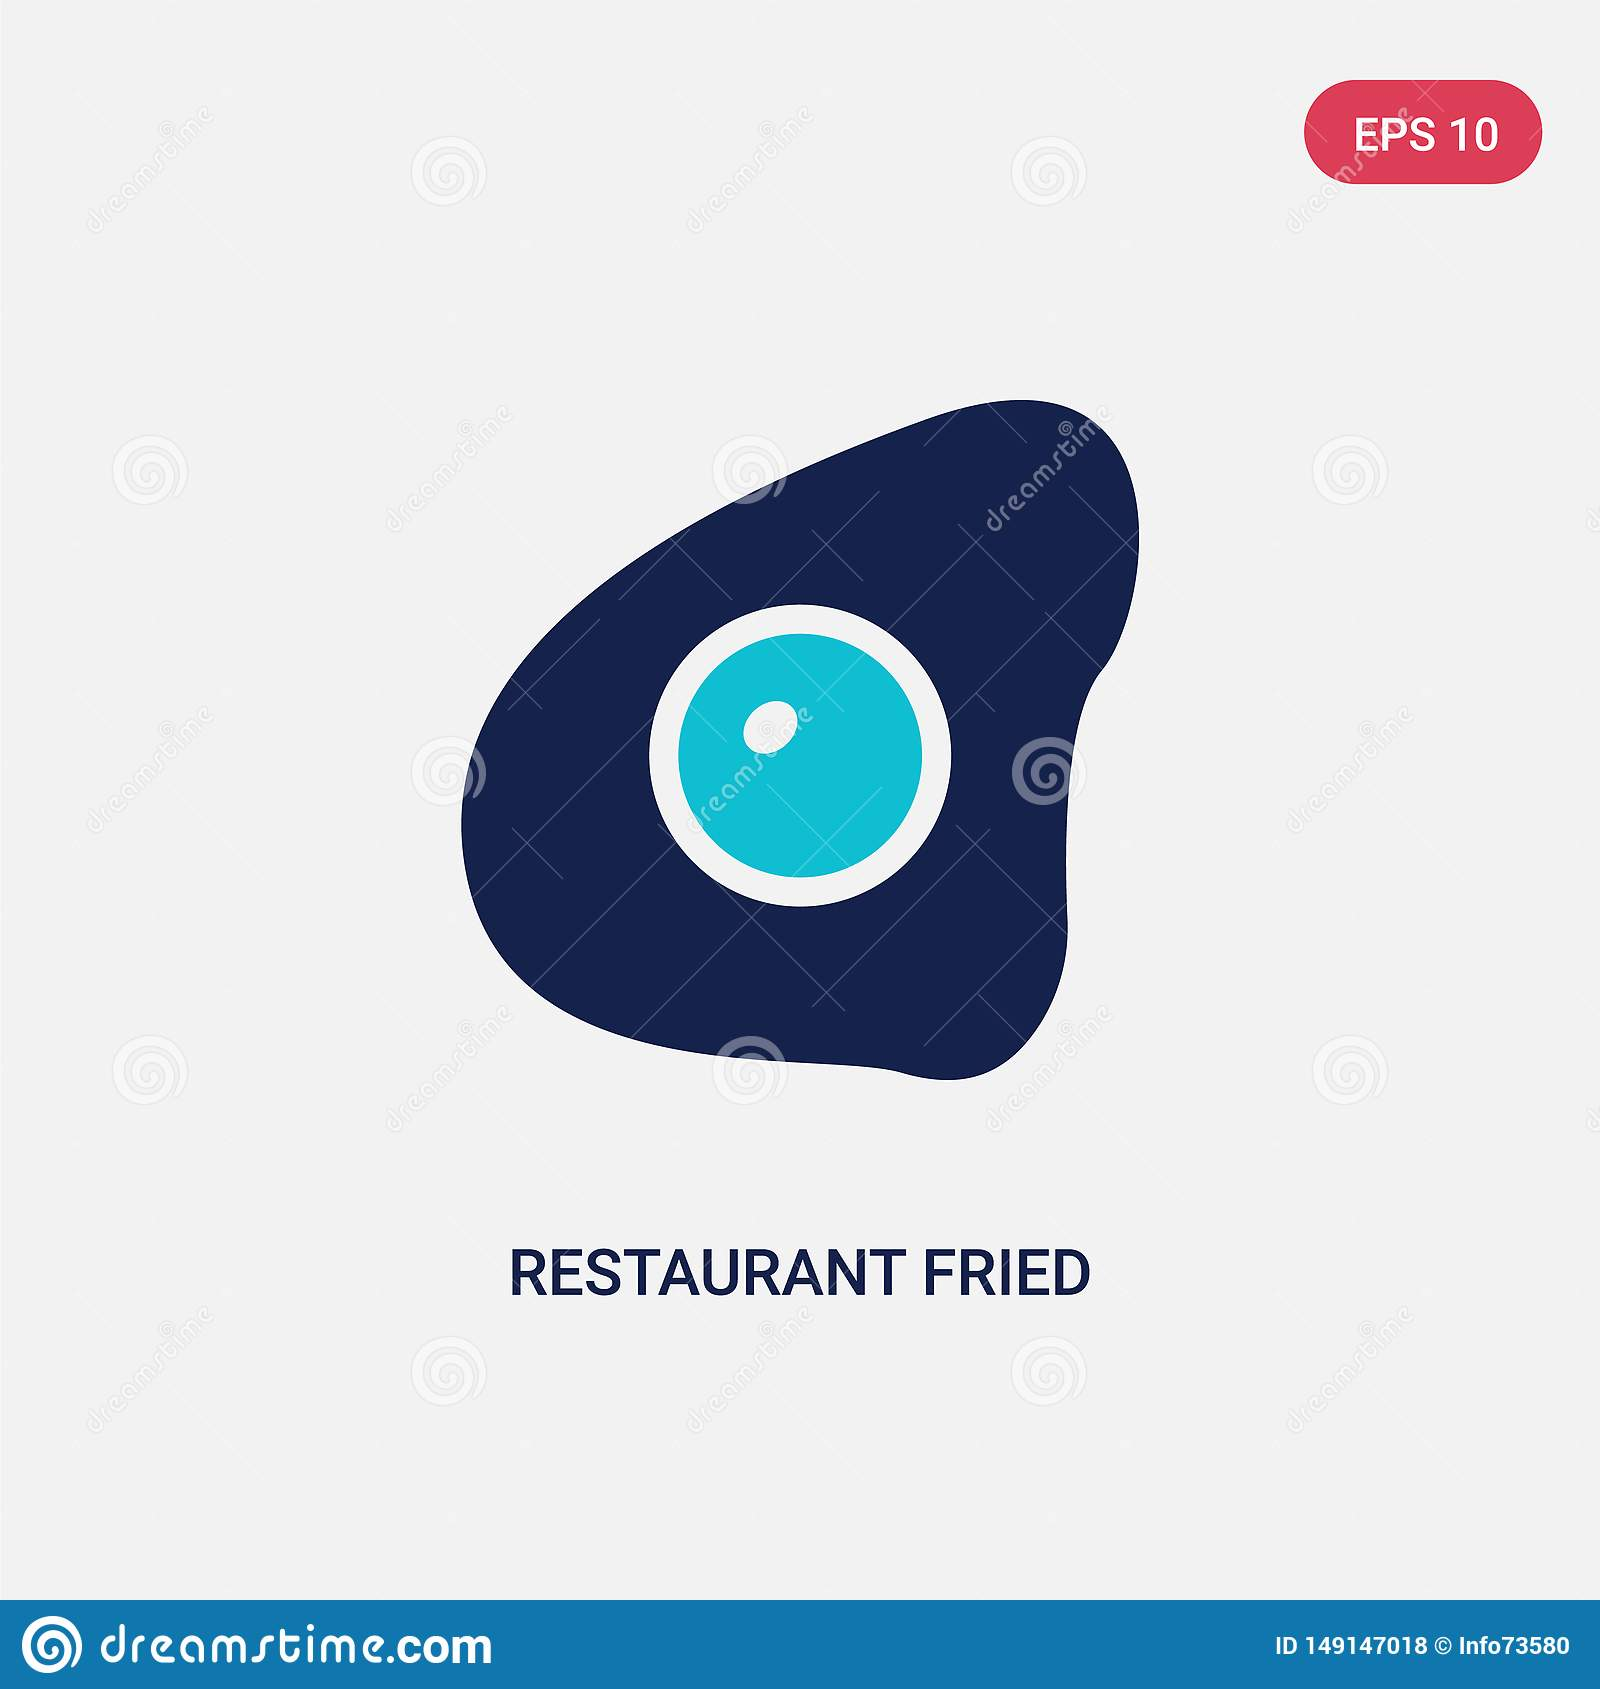 Two Color Restaurant Fried Egg Vector Icon From Bistro And Restaurant Concept Isolated Blue Restaurant Fried Egg Vector Sign Stock Vector Illustration Of Eggs Cuisine 149147018